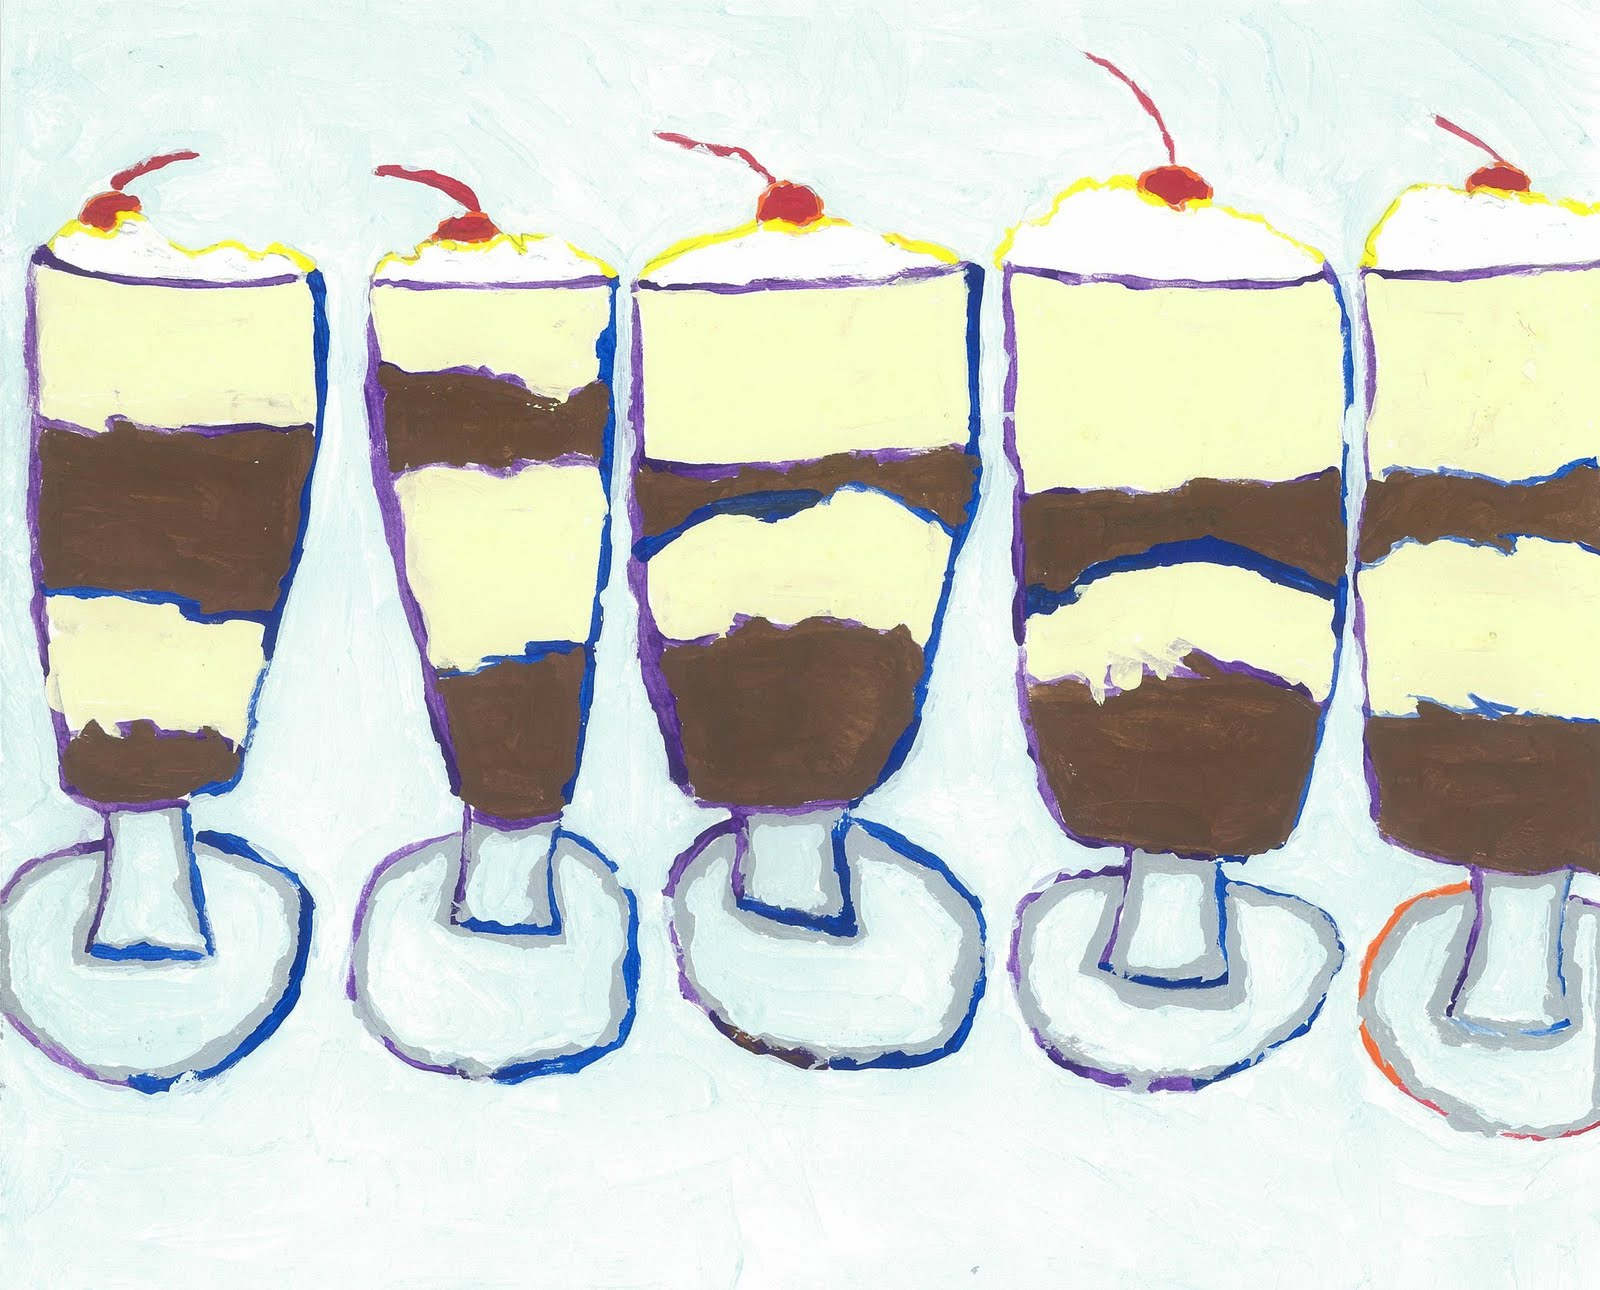 Art for Small Hands: In the Style of - Wayne Thiebaud